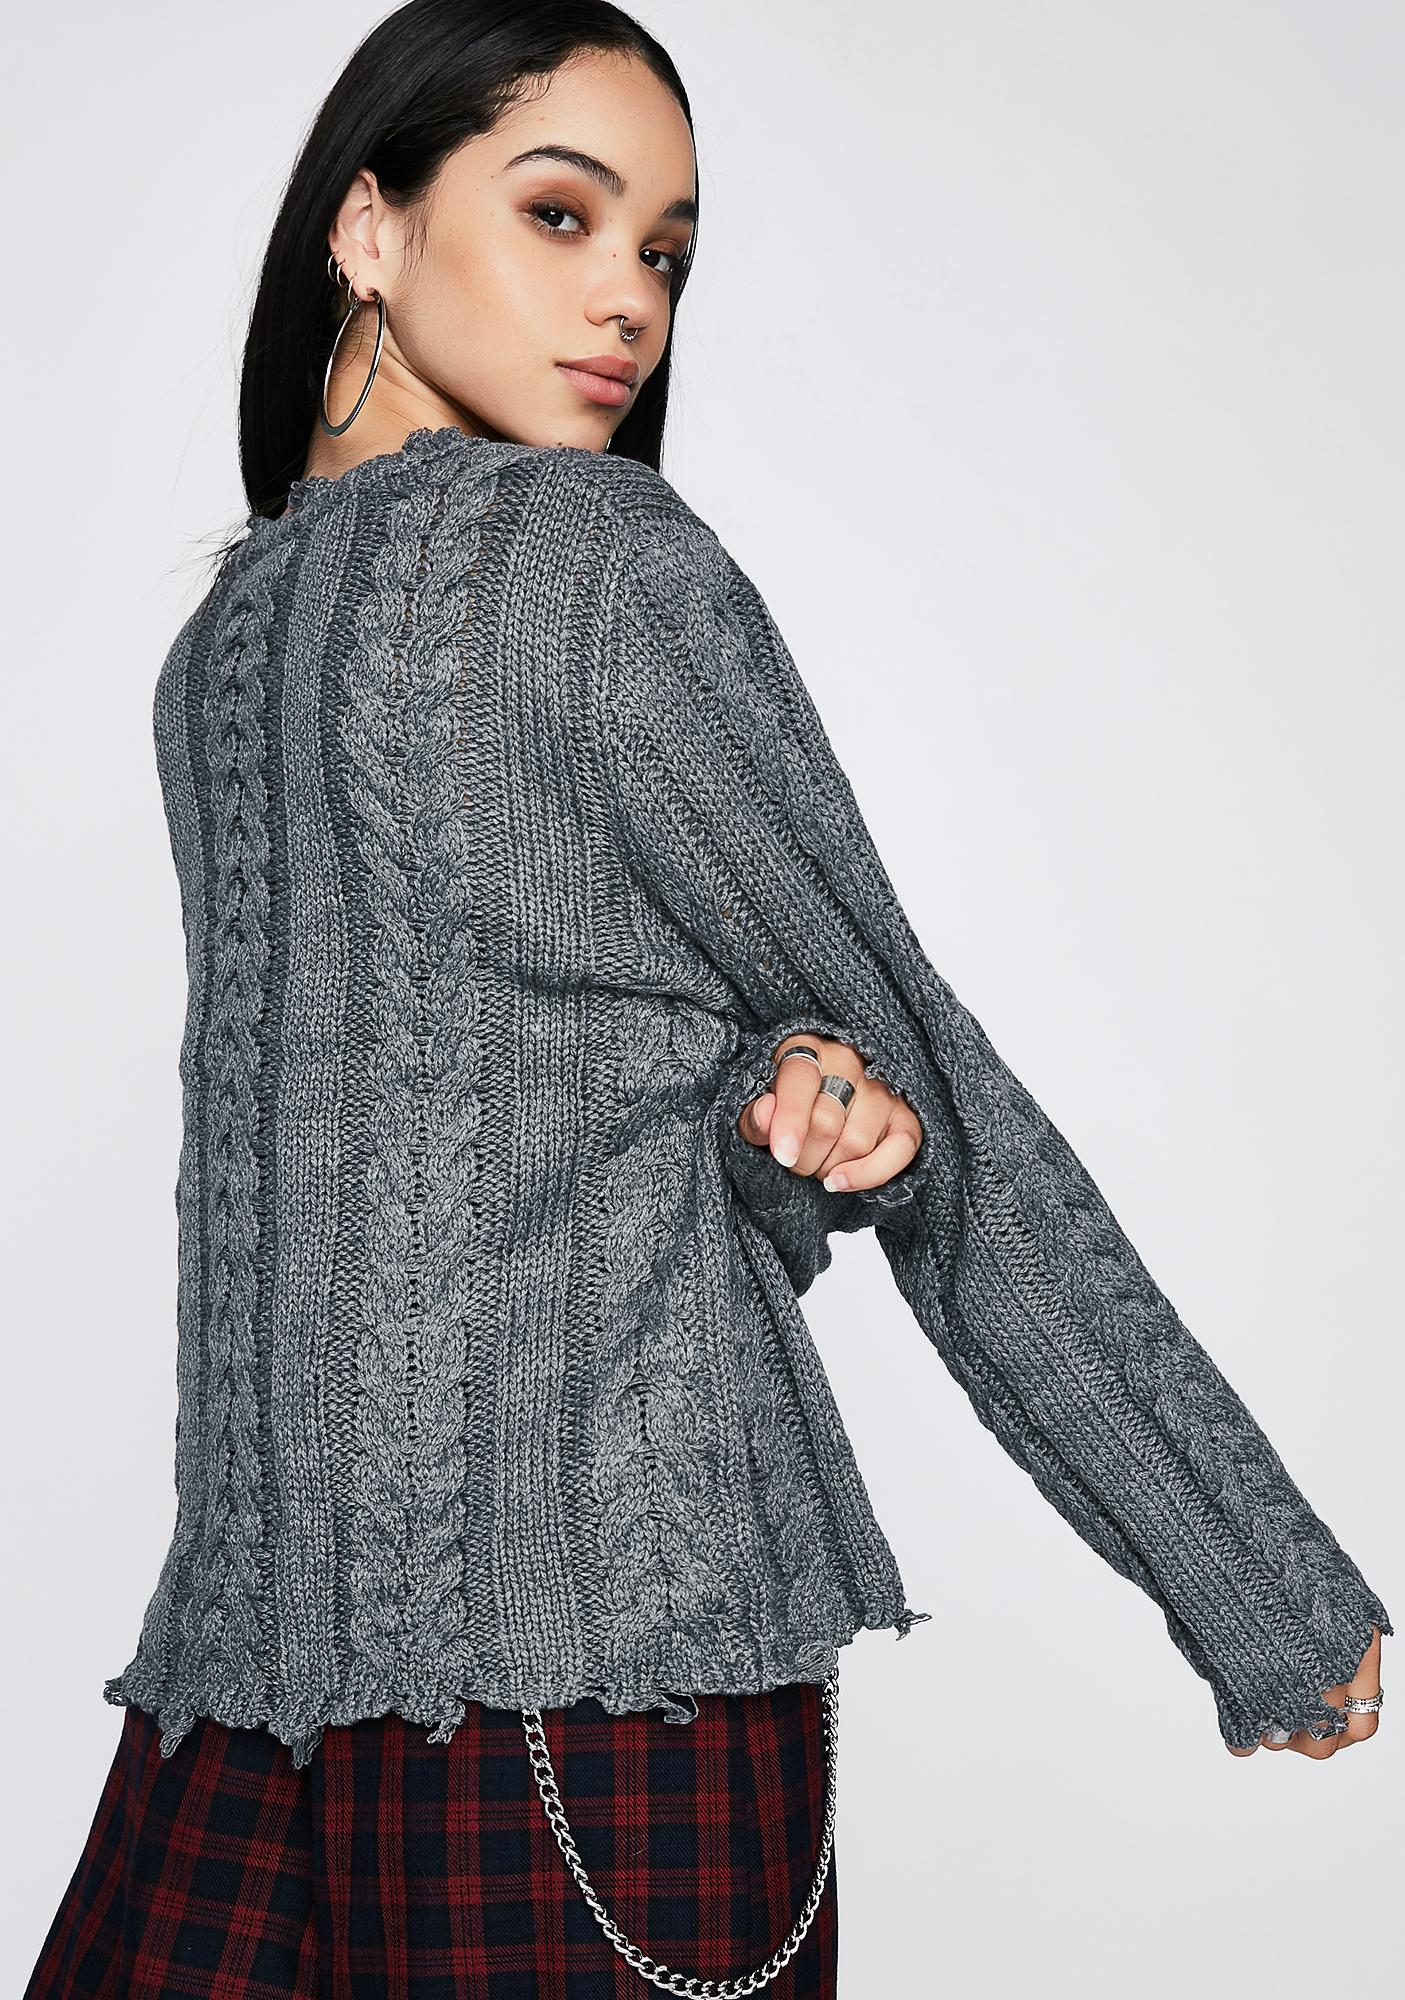 Distressed Cable Knit Sweater | Dolls Kill